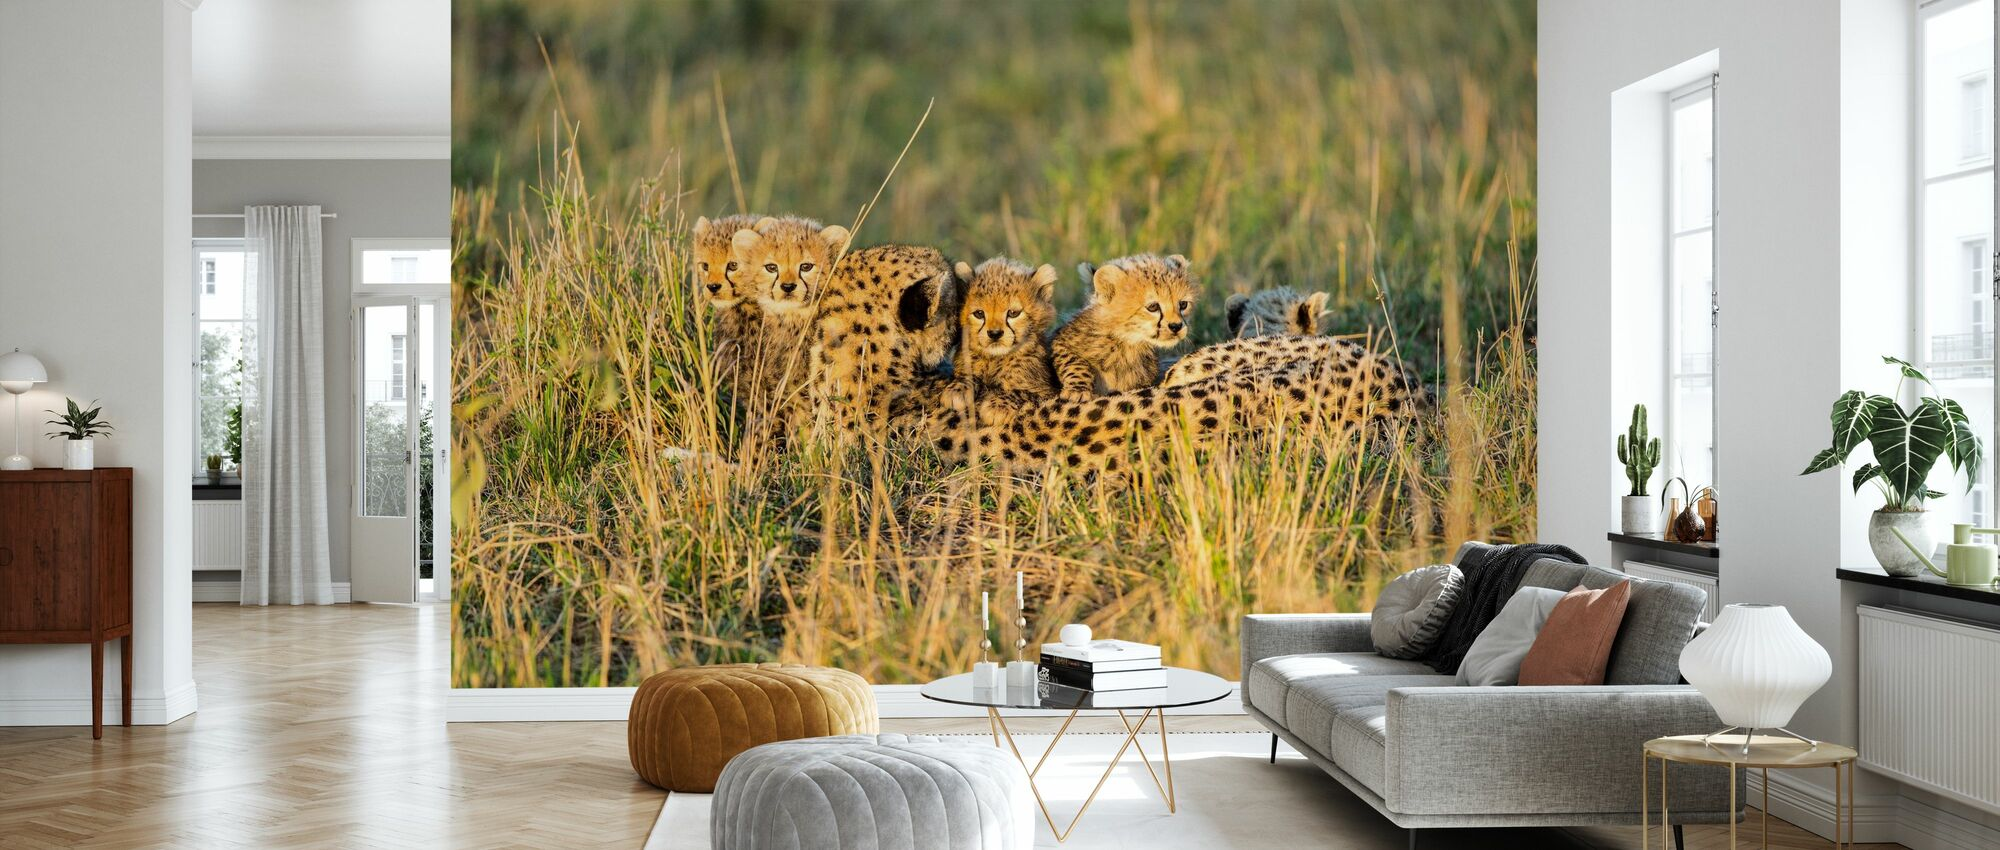 Female Cheetah and Cubs - Wallpaper - Living Room